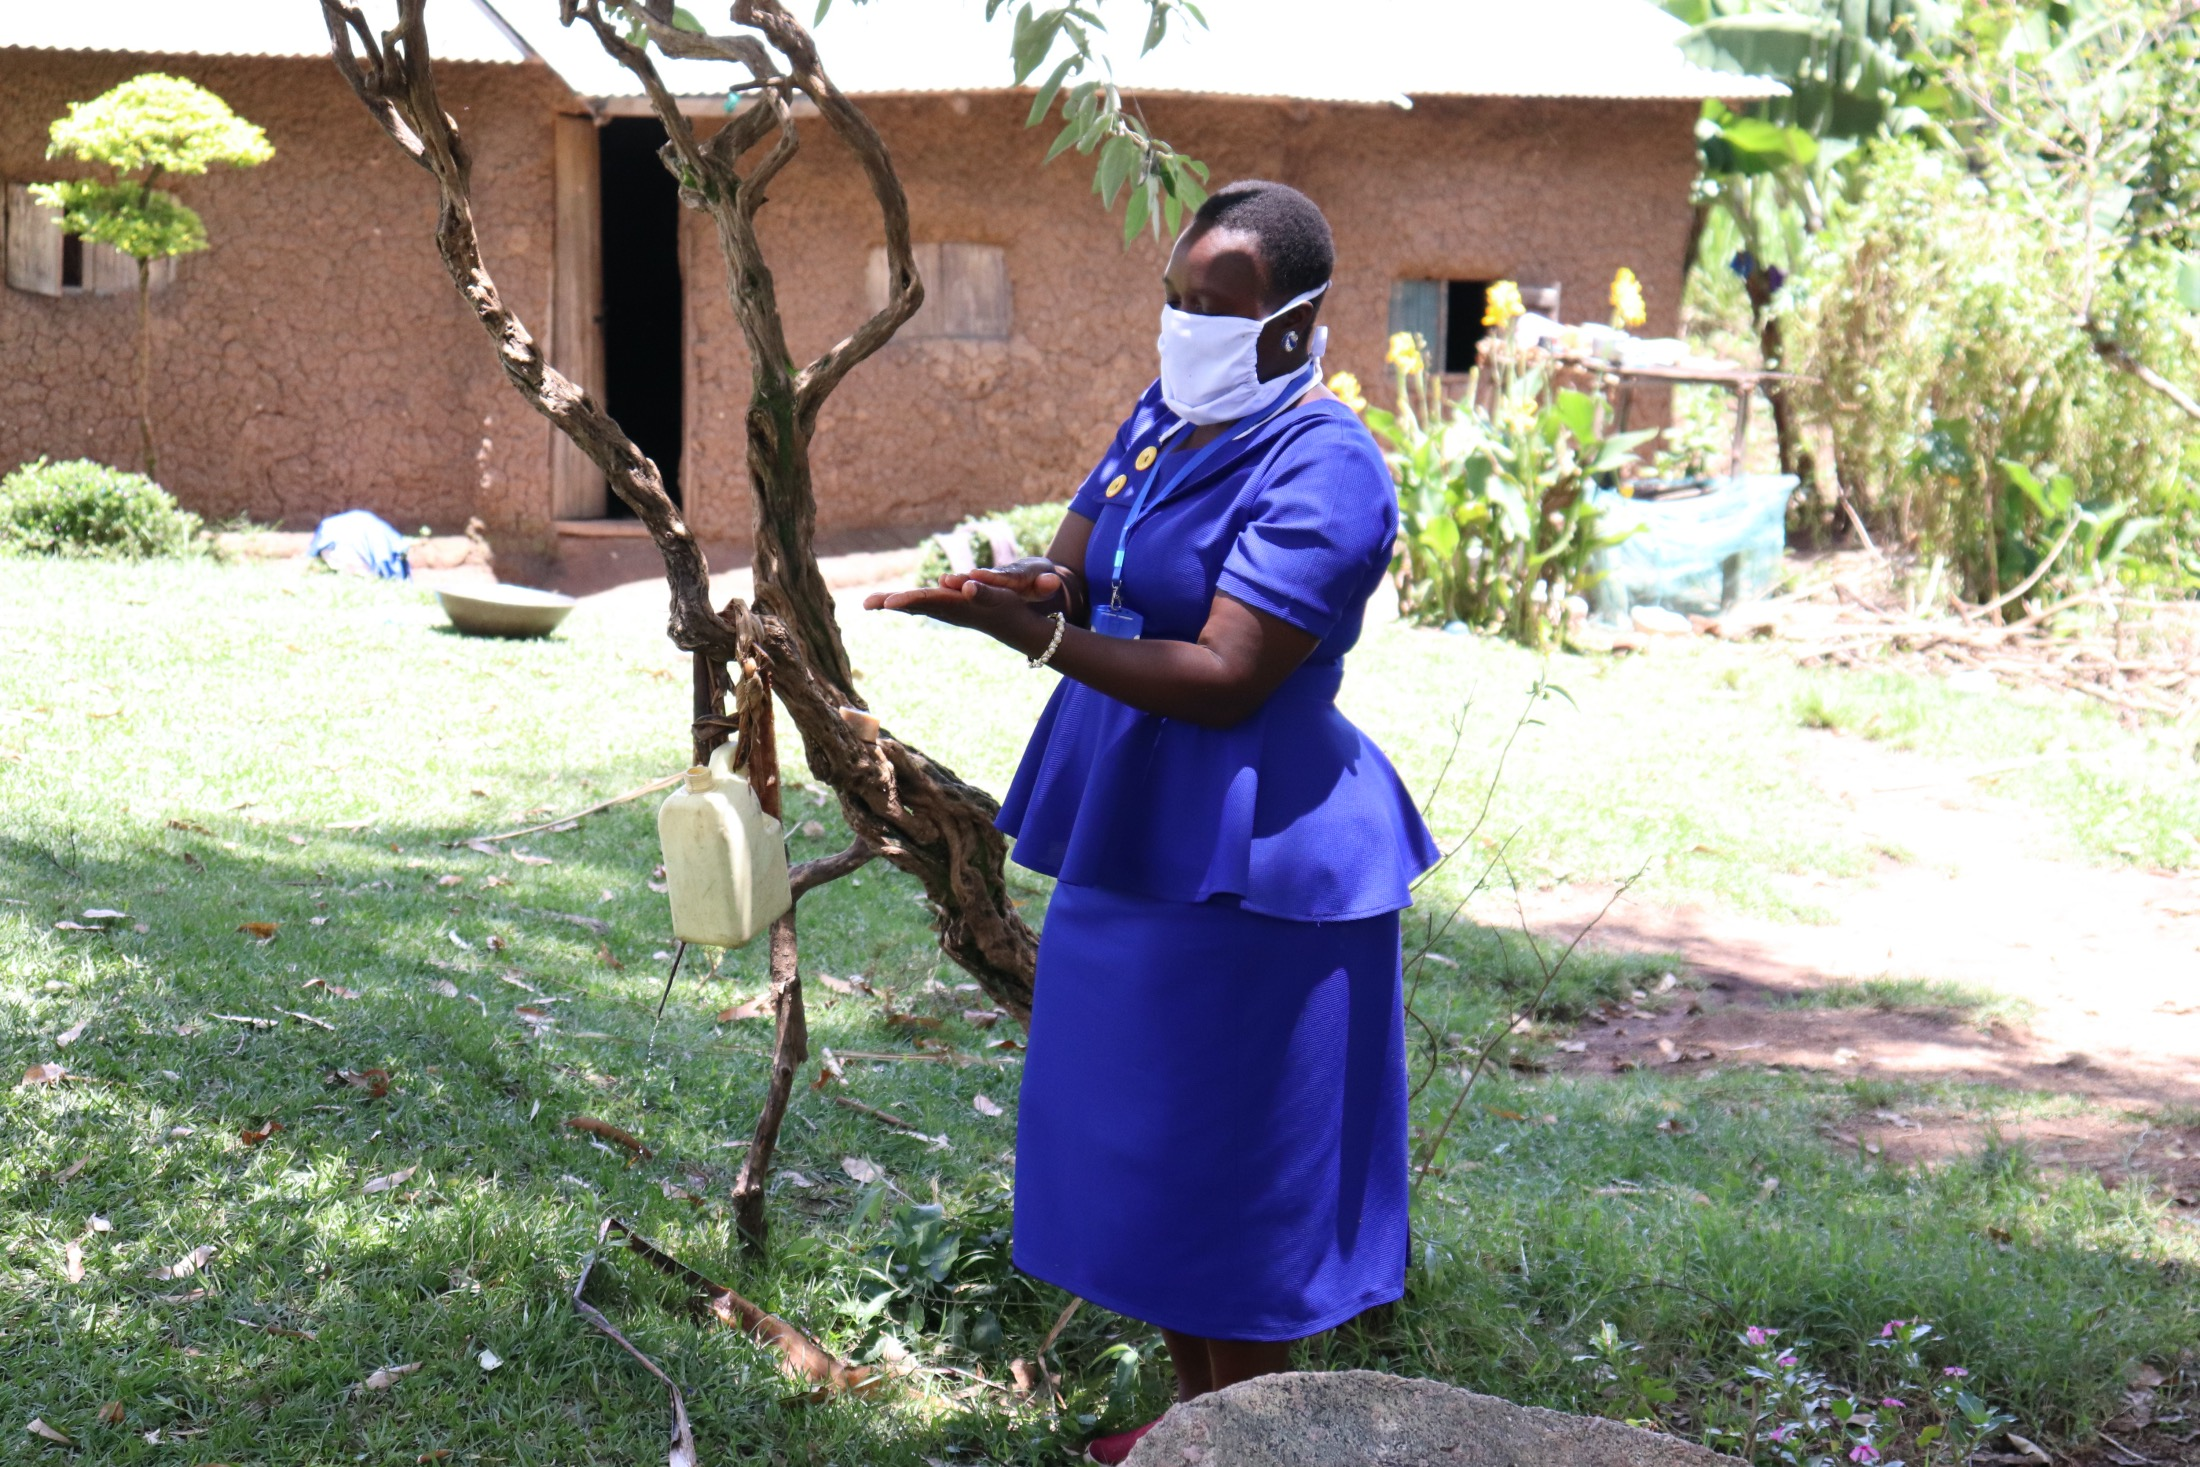 The Water Project : 6-kenya18153-covid-19-trainer-karen-maruti-demonstrates-handwashing